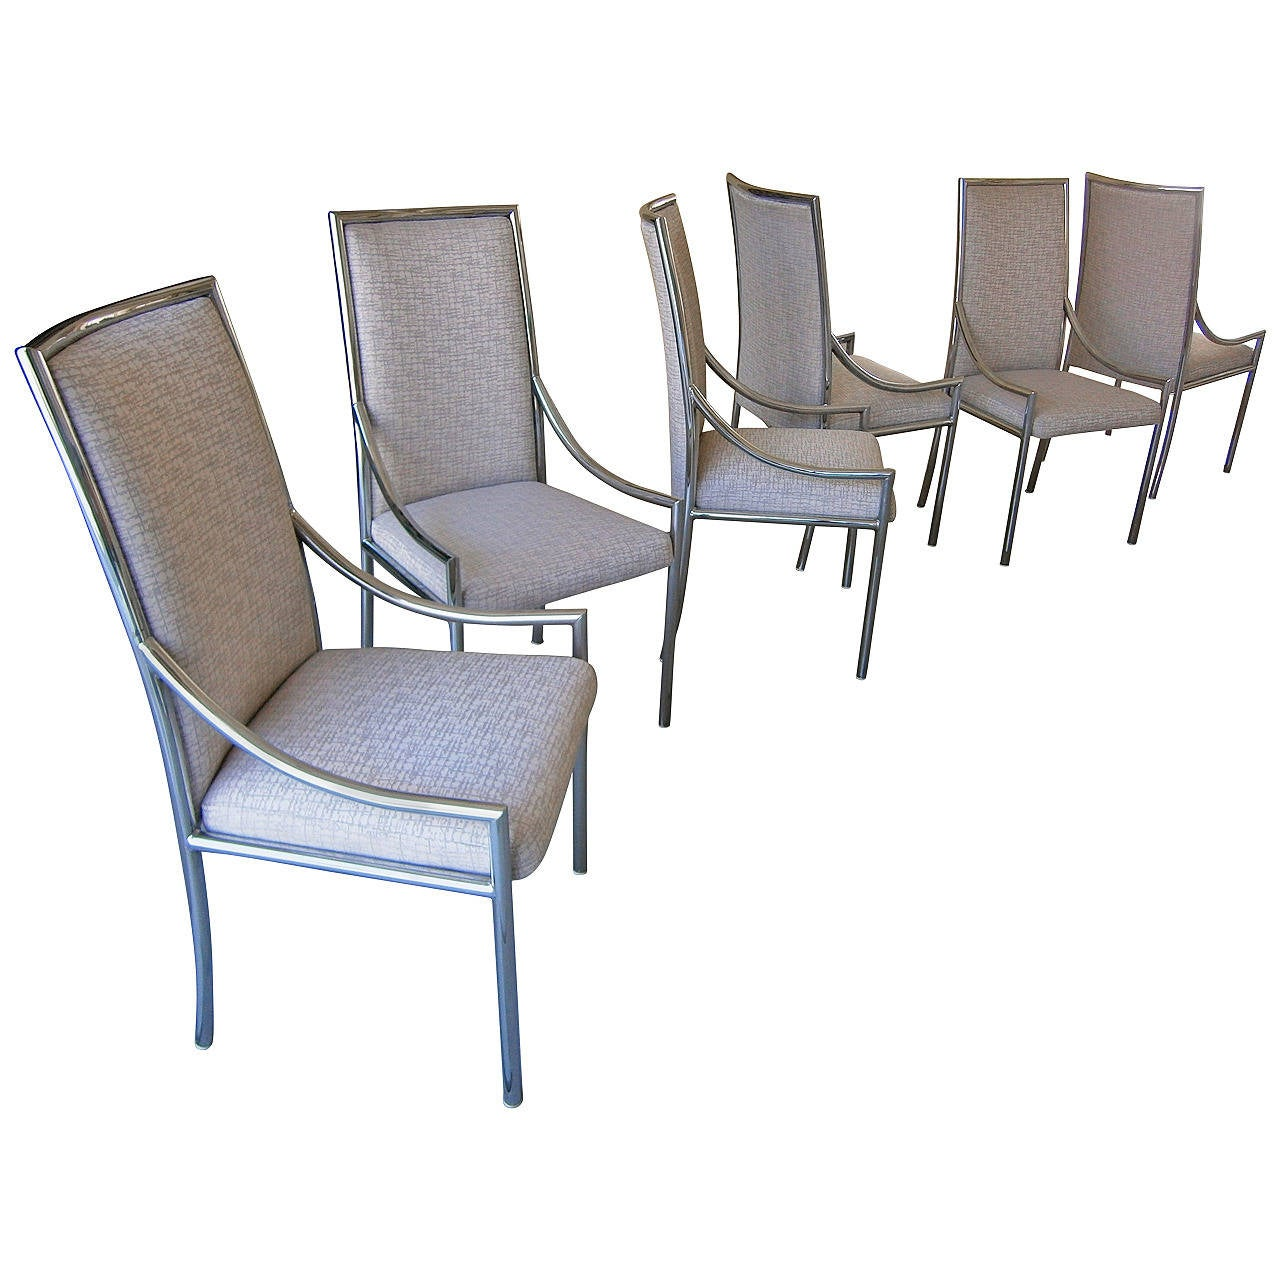 Six Dynamic 1970s Chrome Plated Steel Dining Chairs  : 2667542l from www.1stdibs.com size 1280 x 1280 jpeg 141kB